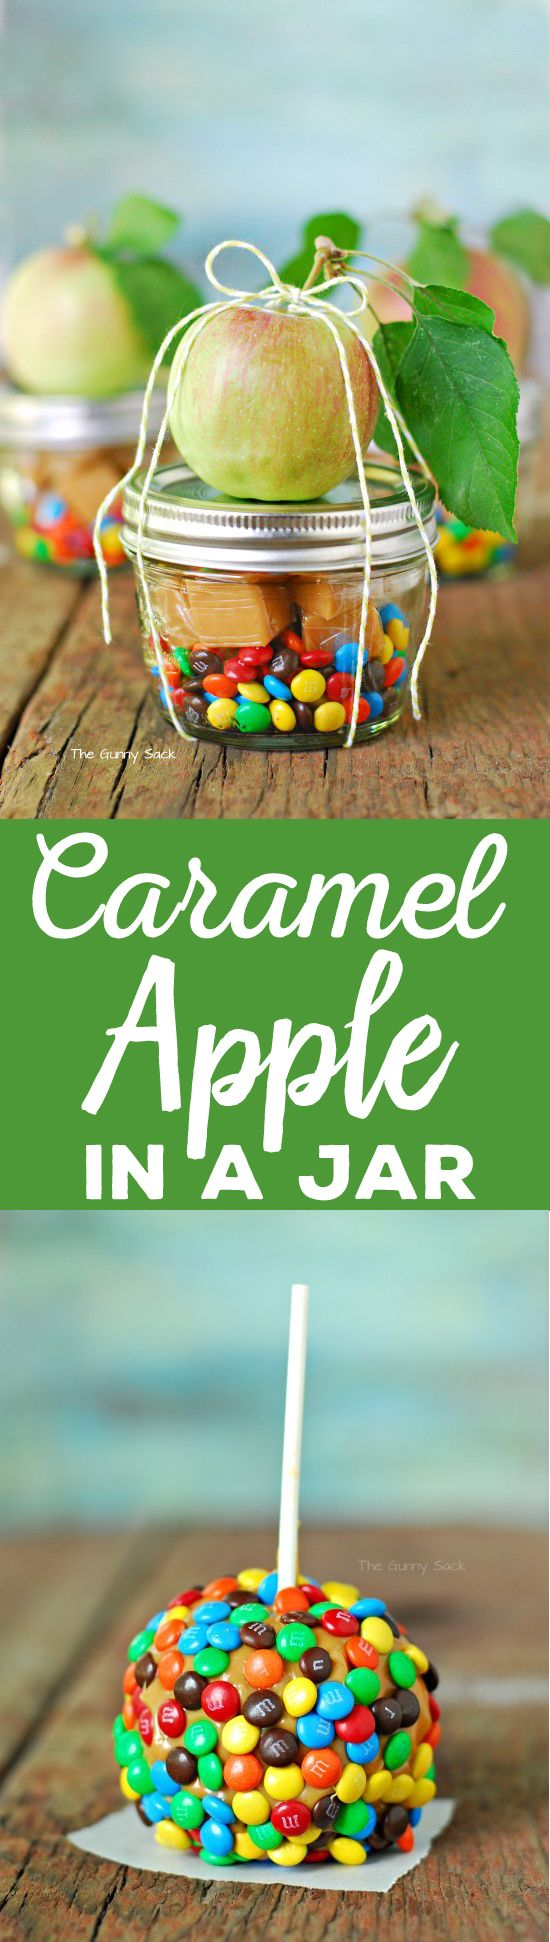 A dessert in a jar is so much fun and is a great fall party idea. This Caramel Apple In A Jar can even be given as a gift or party favor.